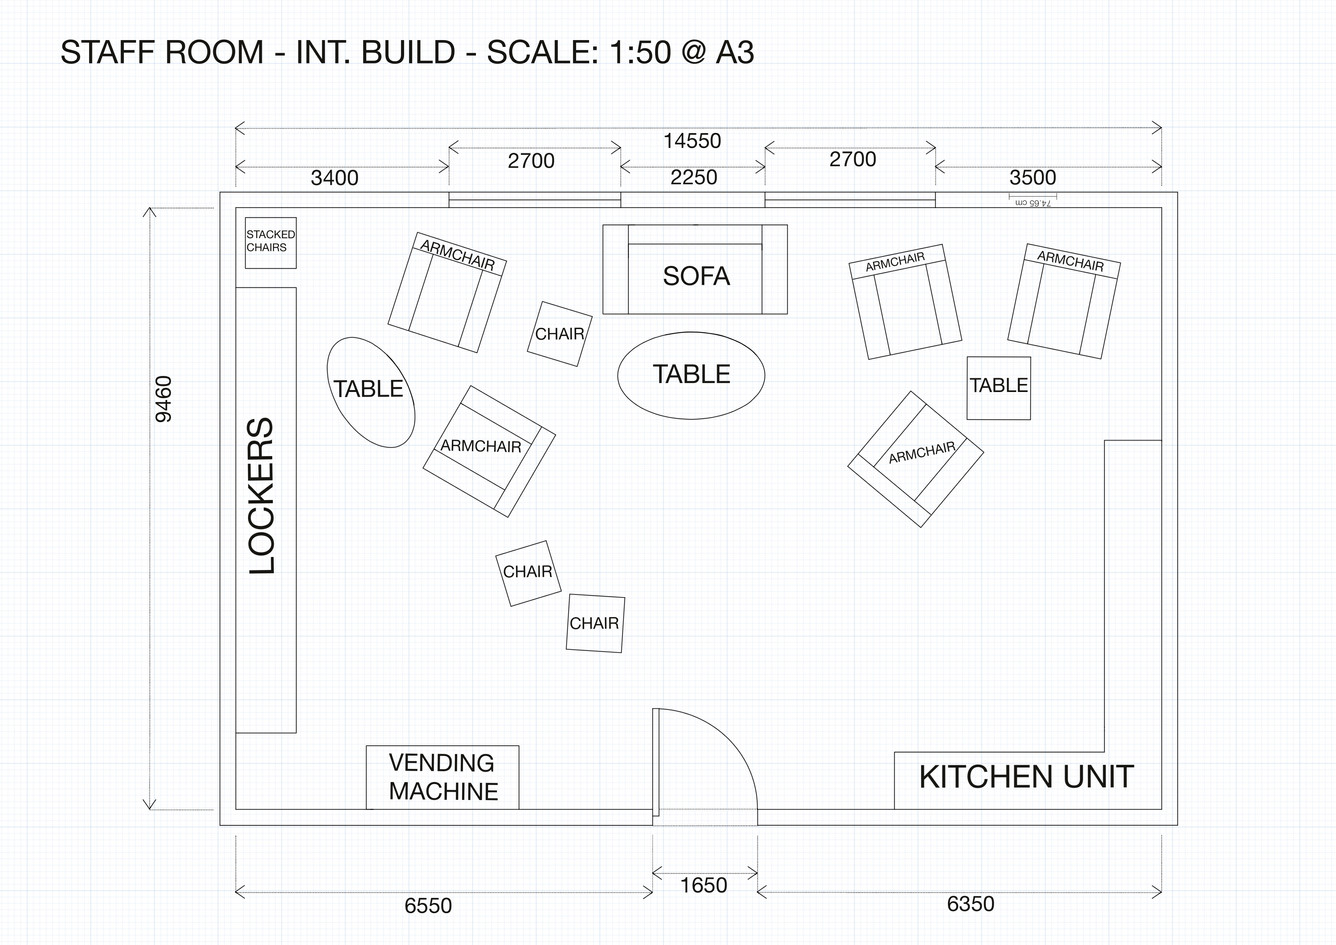 Floorplan done using AutoCAD